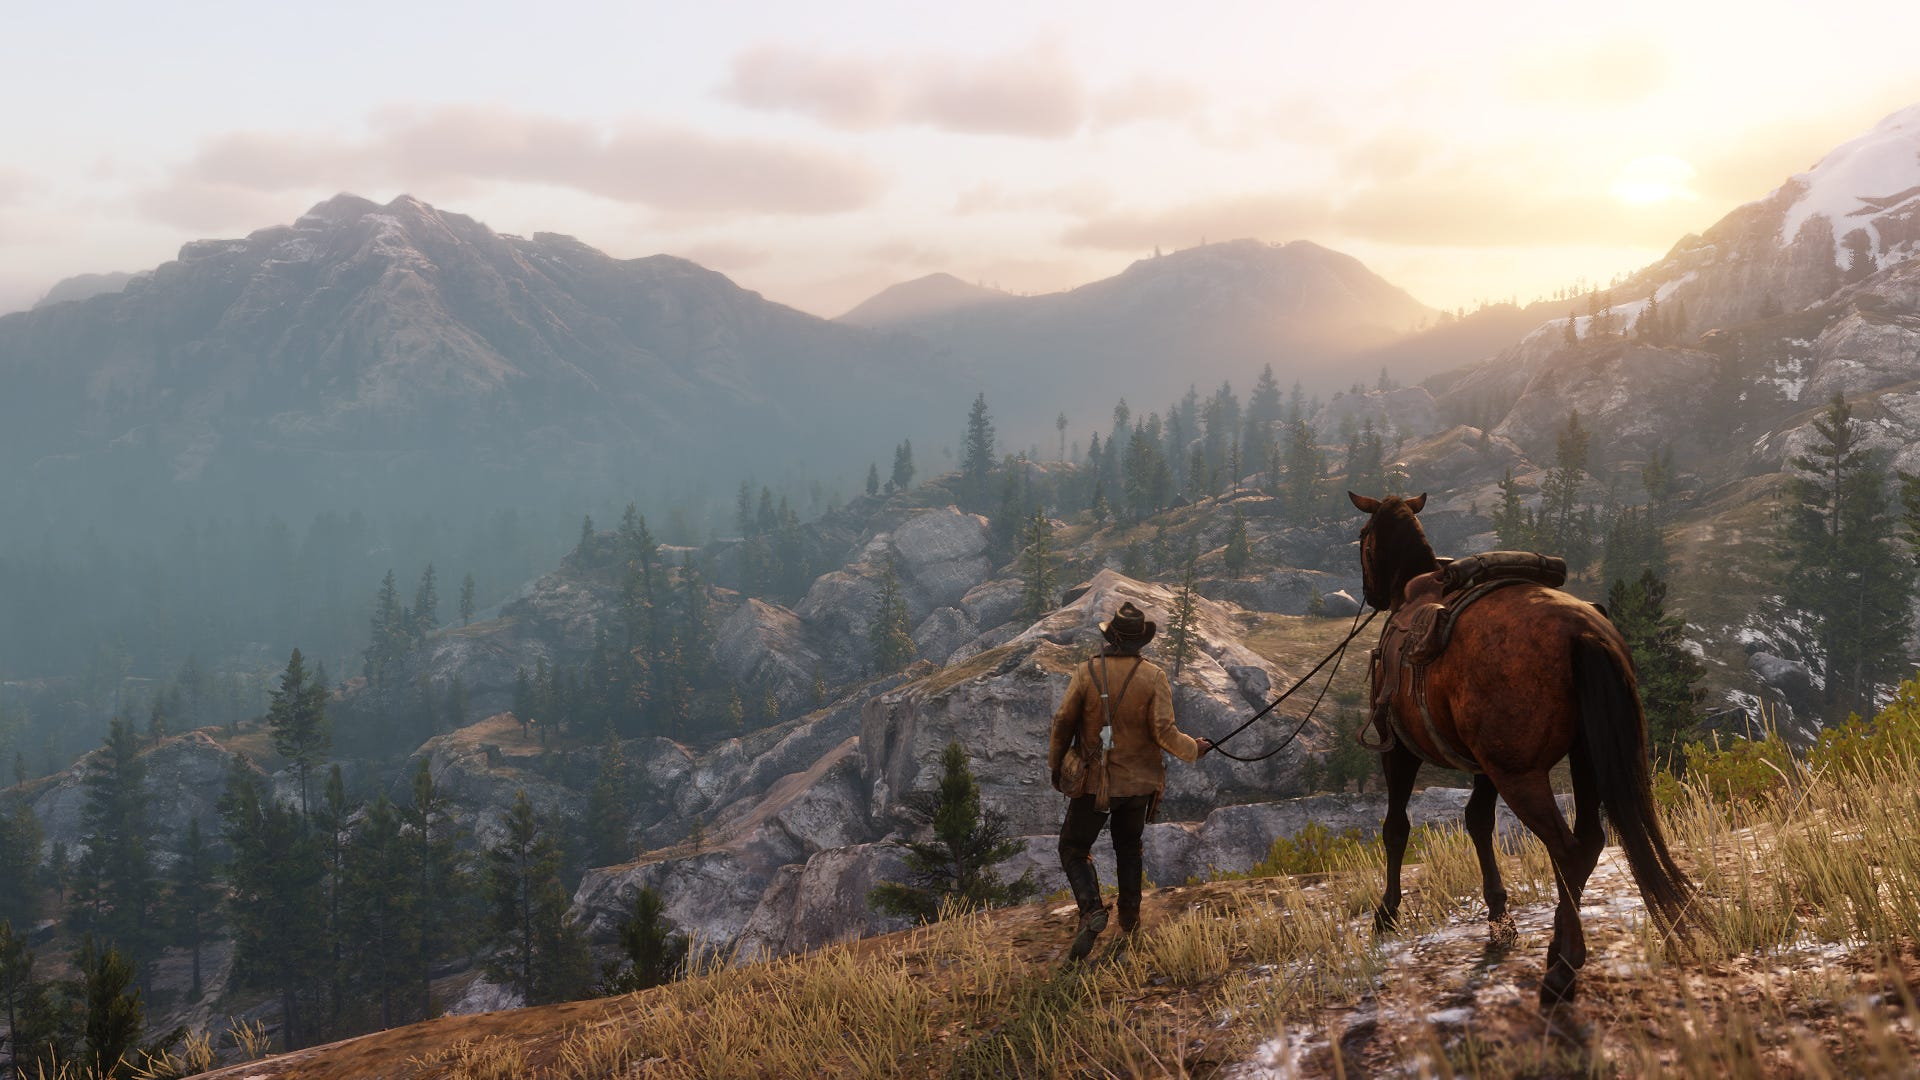 How much for a can of beans? Red Dead Online's virtual world grapples with real economic problems